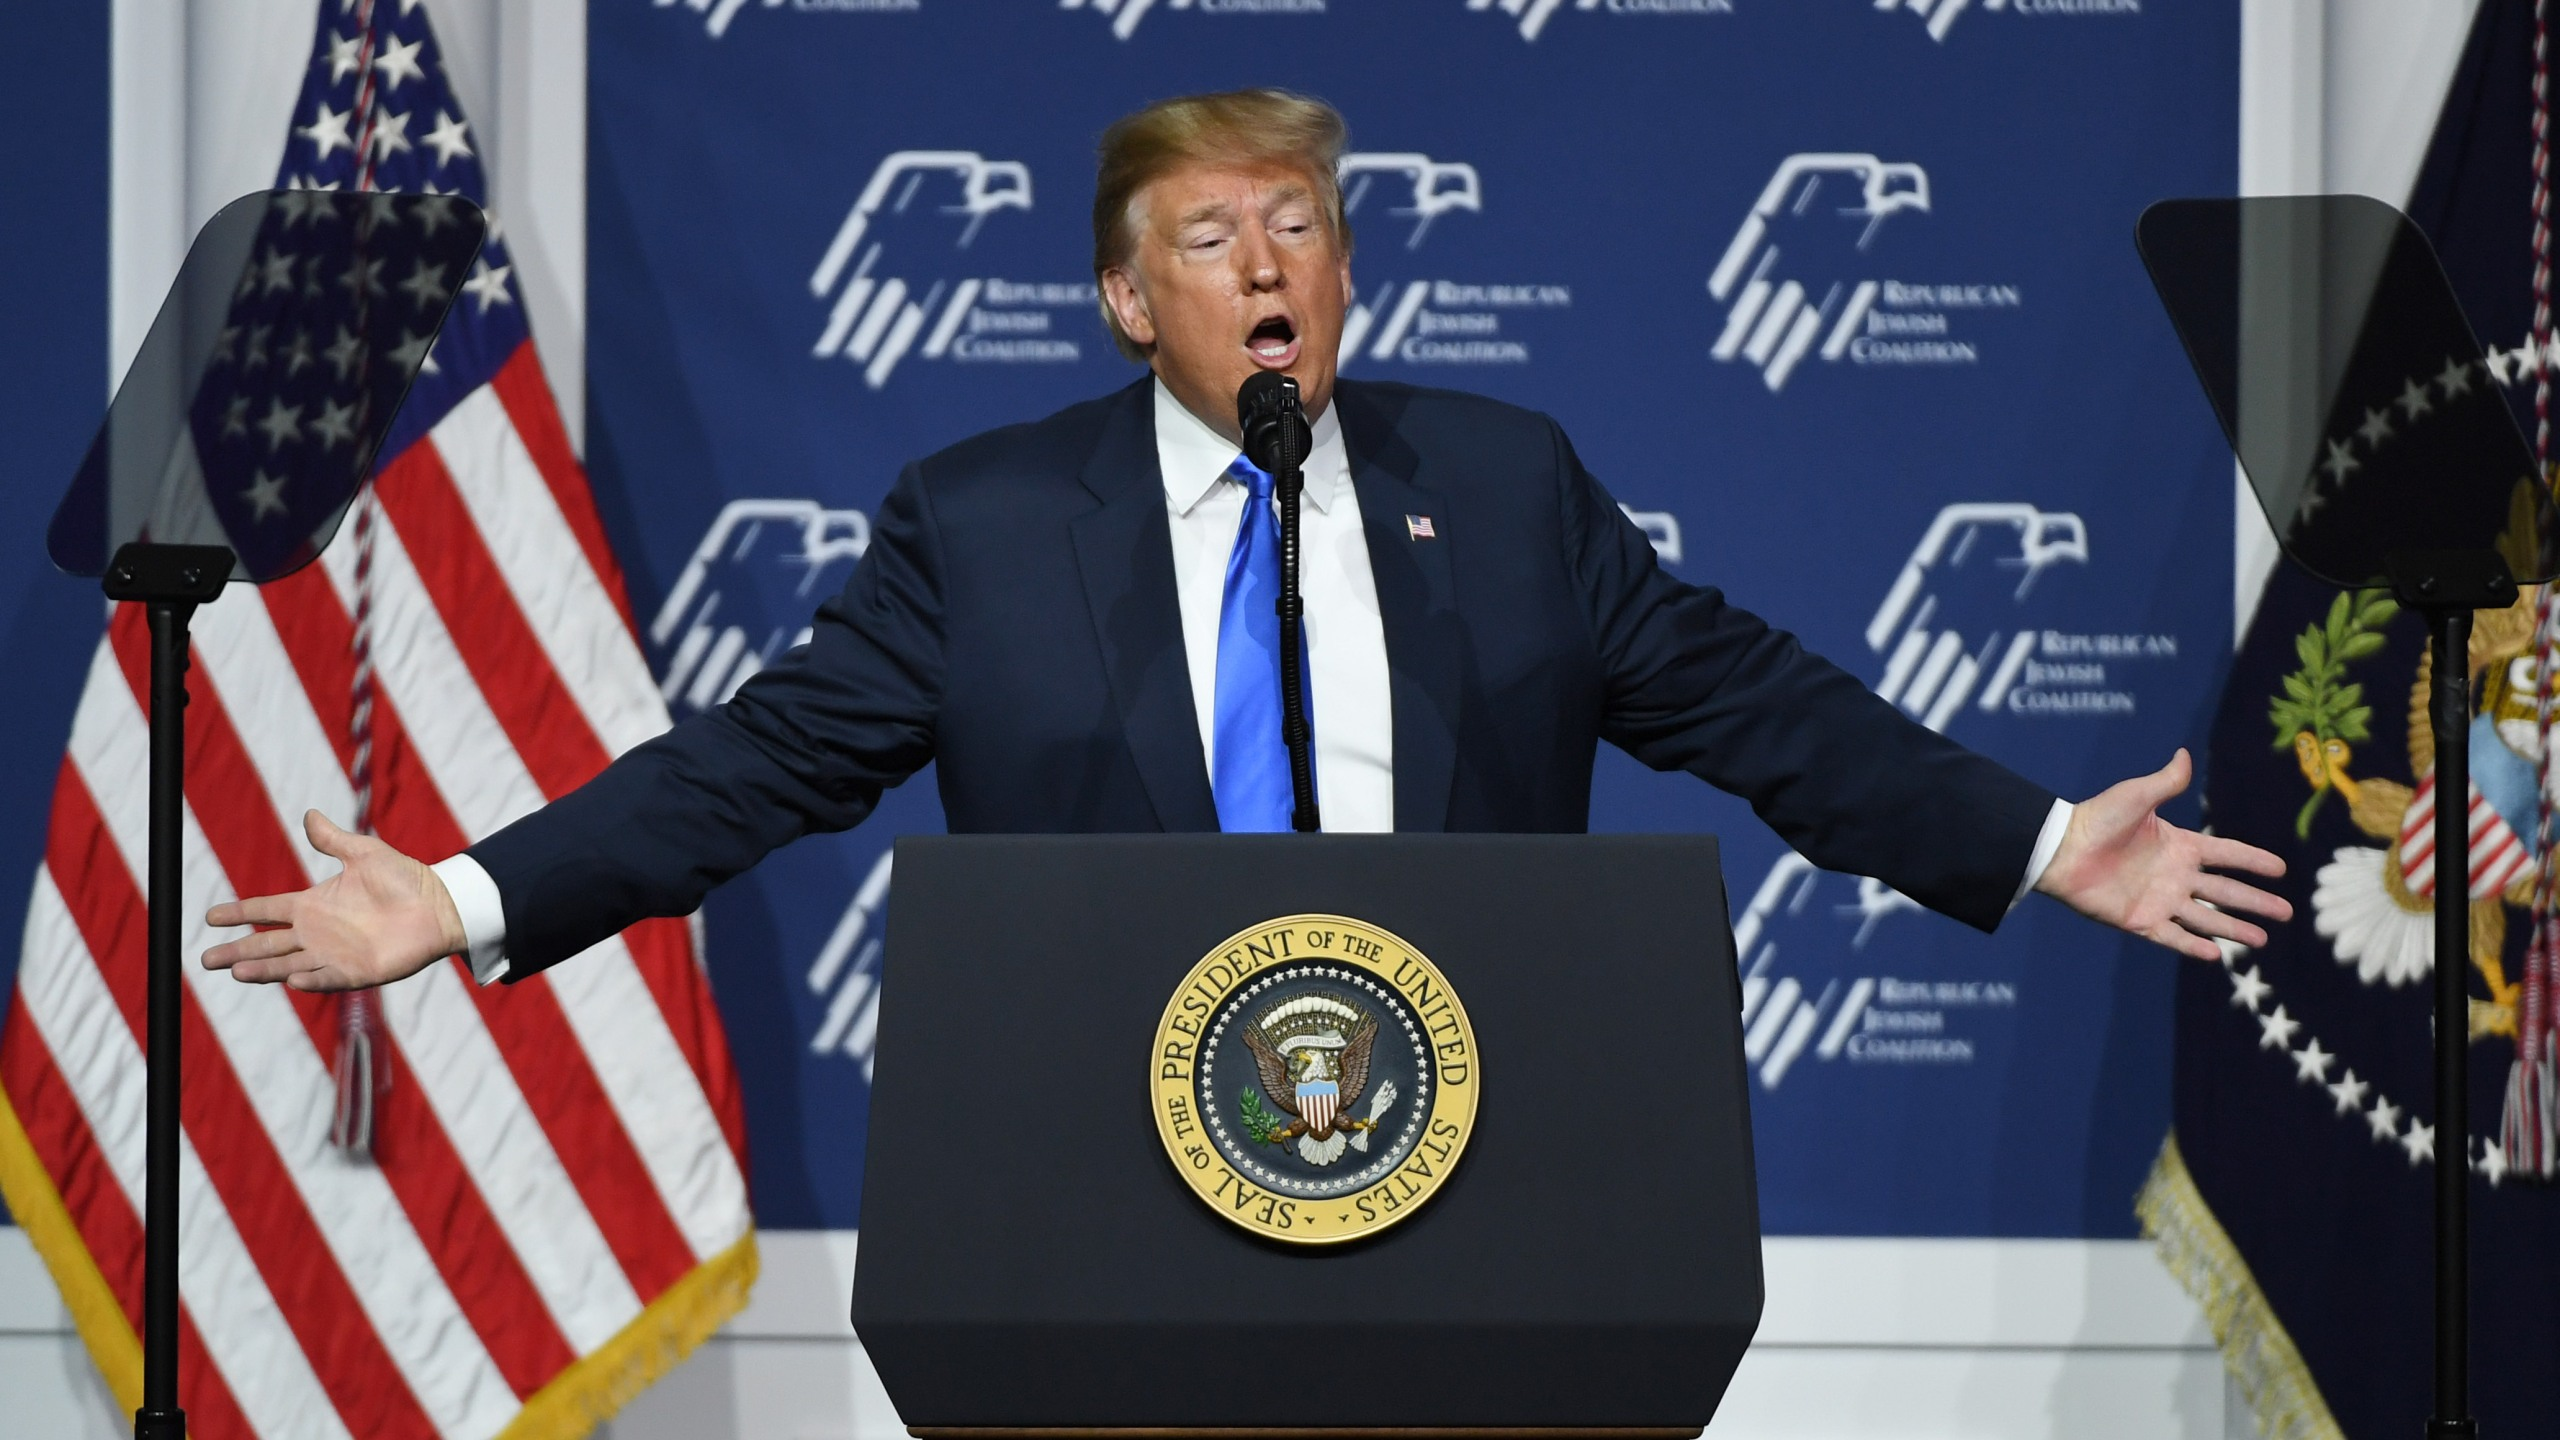 Donald Trump speaks during the Republican Jewish Coalition's annual leadership meeting at The Venetian Las Vegas on April 6, 2019 in Las Vegas, Nevada. (Credit: Ethan Miller/Getty Images)